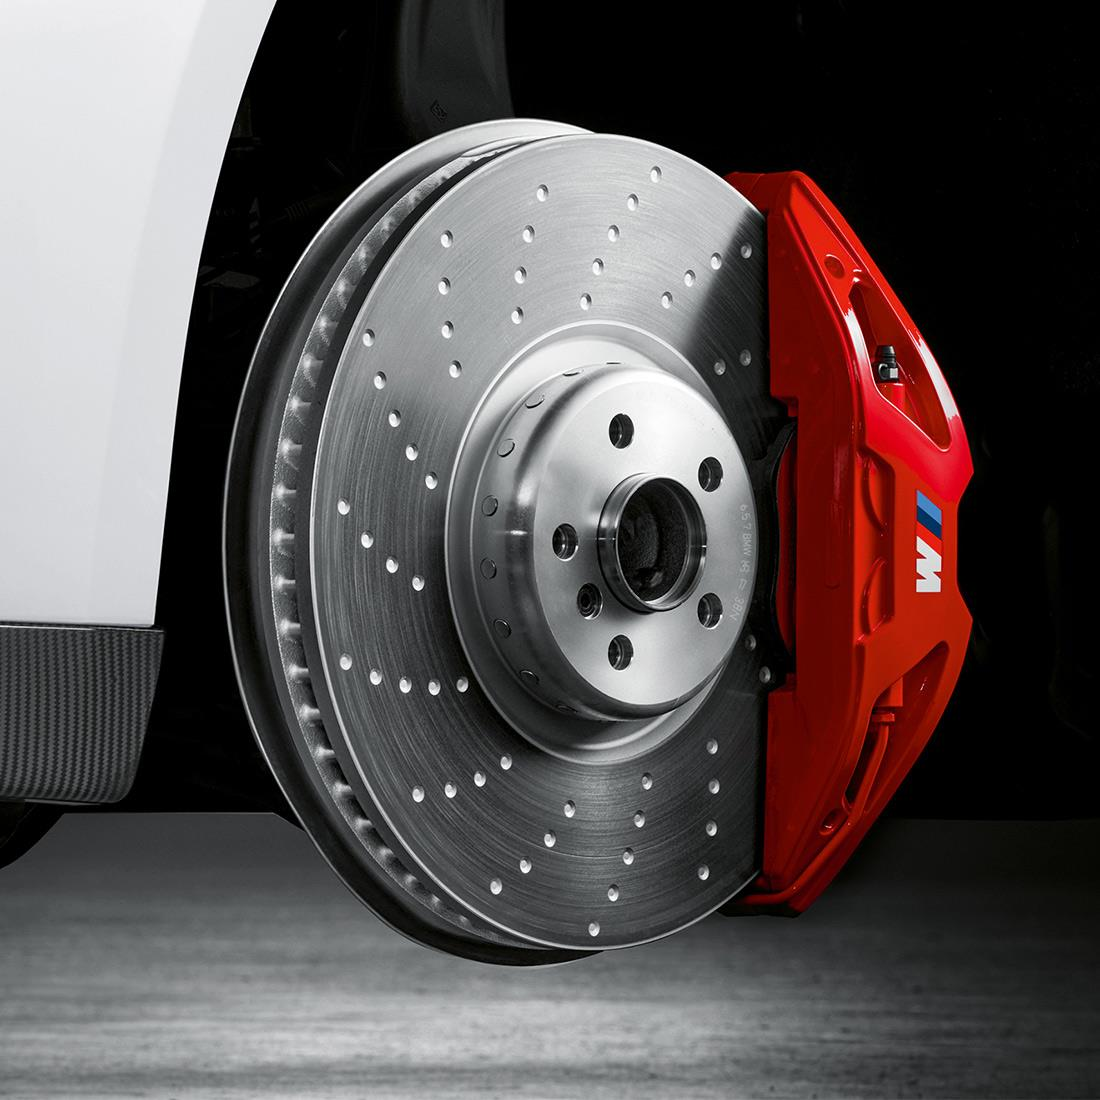 M Performance 19-inch Brake disc front